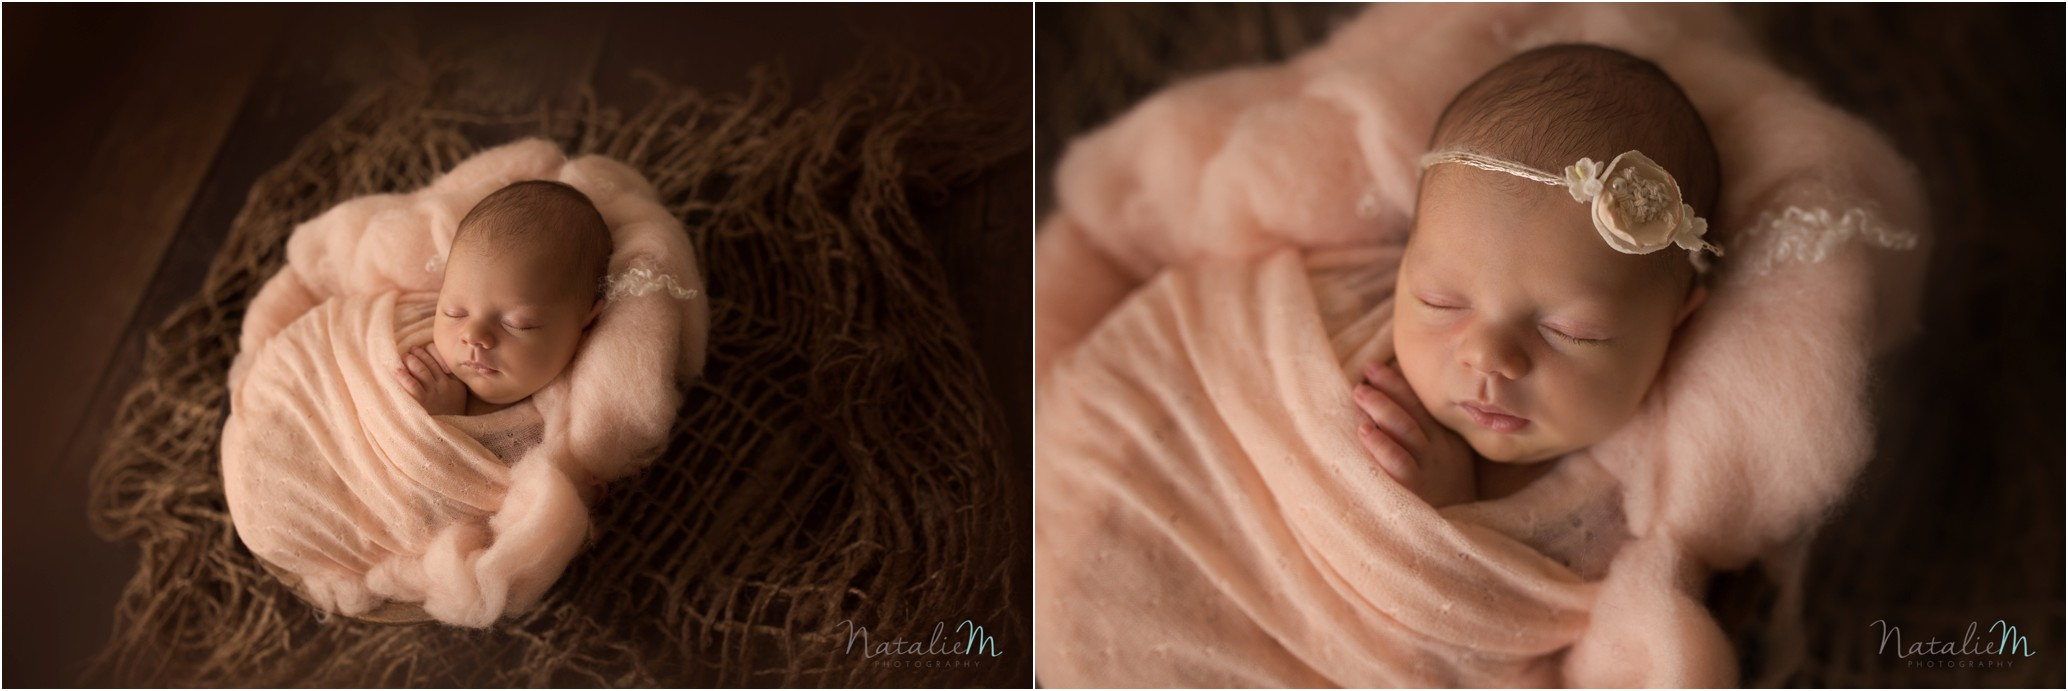 Newborn Photography Geelong_0941